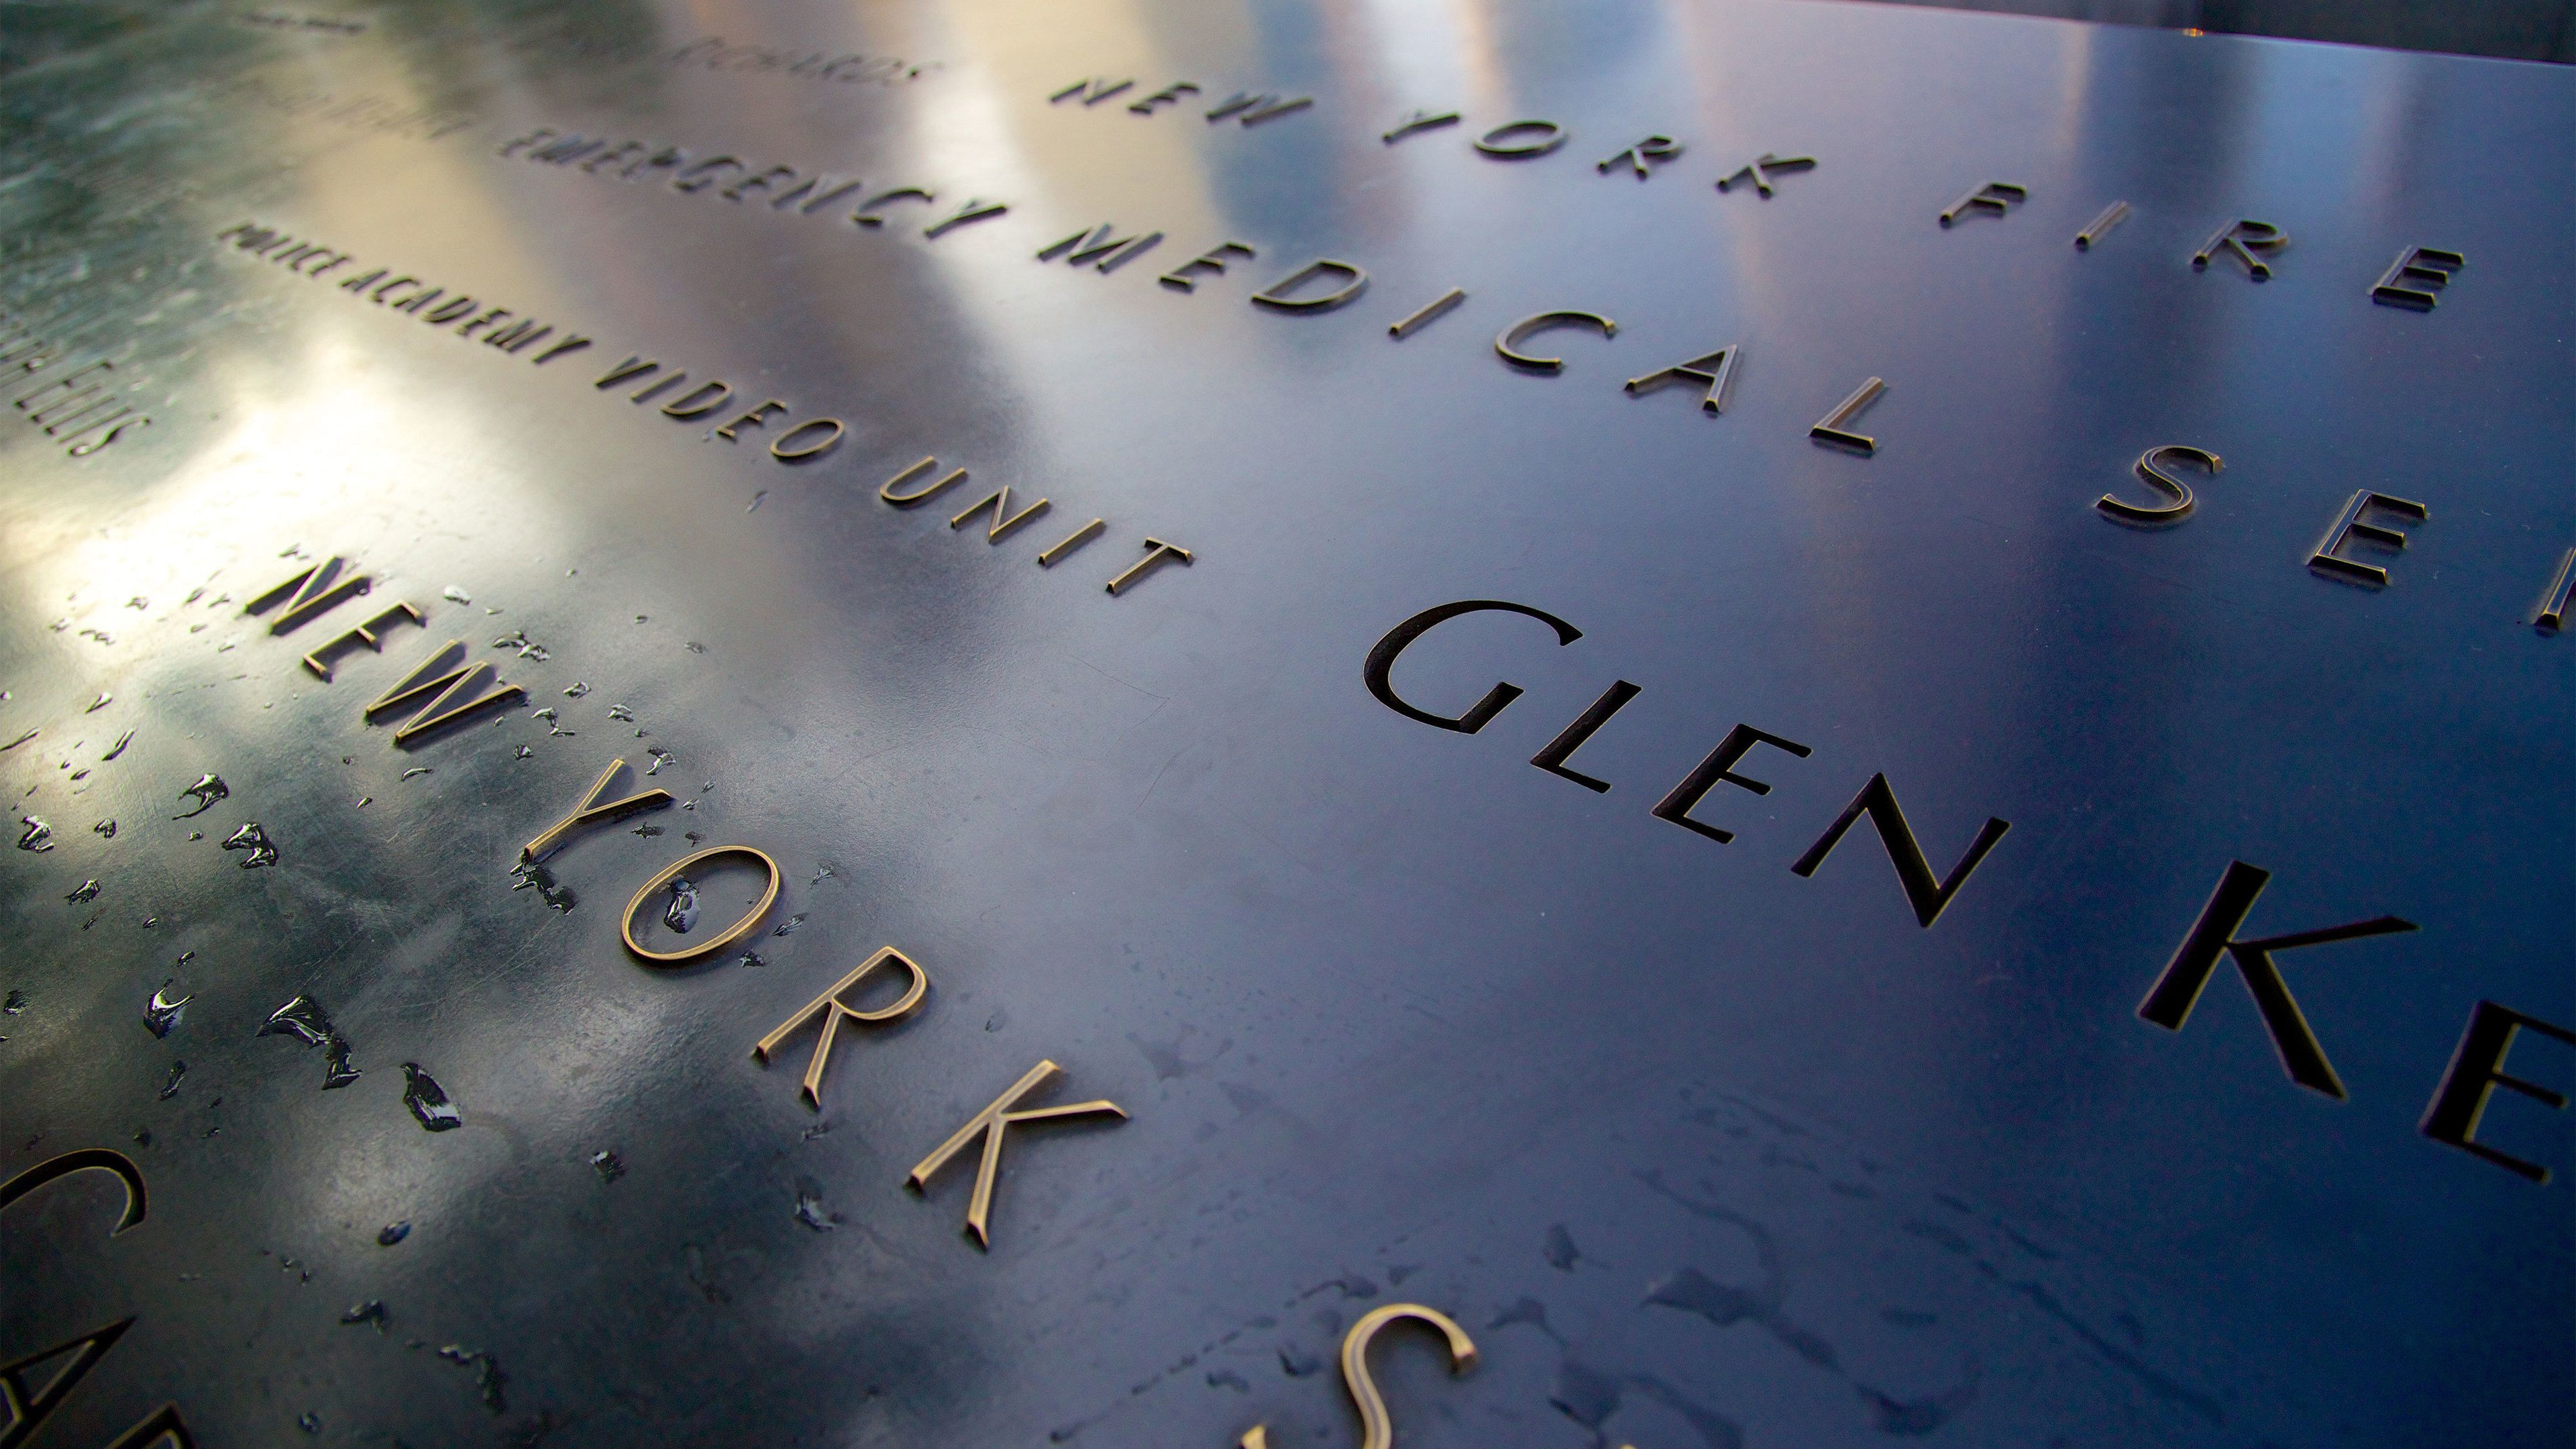 Names engraved at the 9/11 Memorial in New York